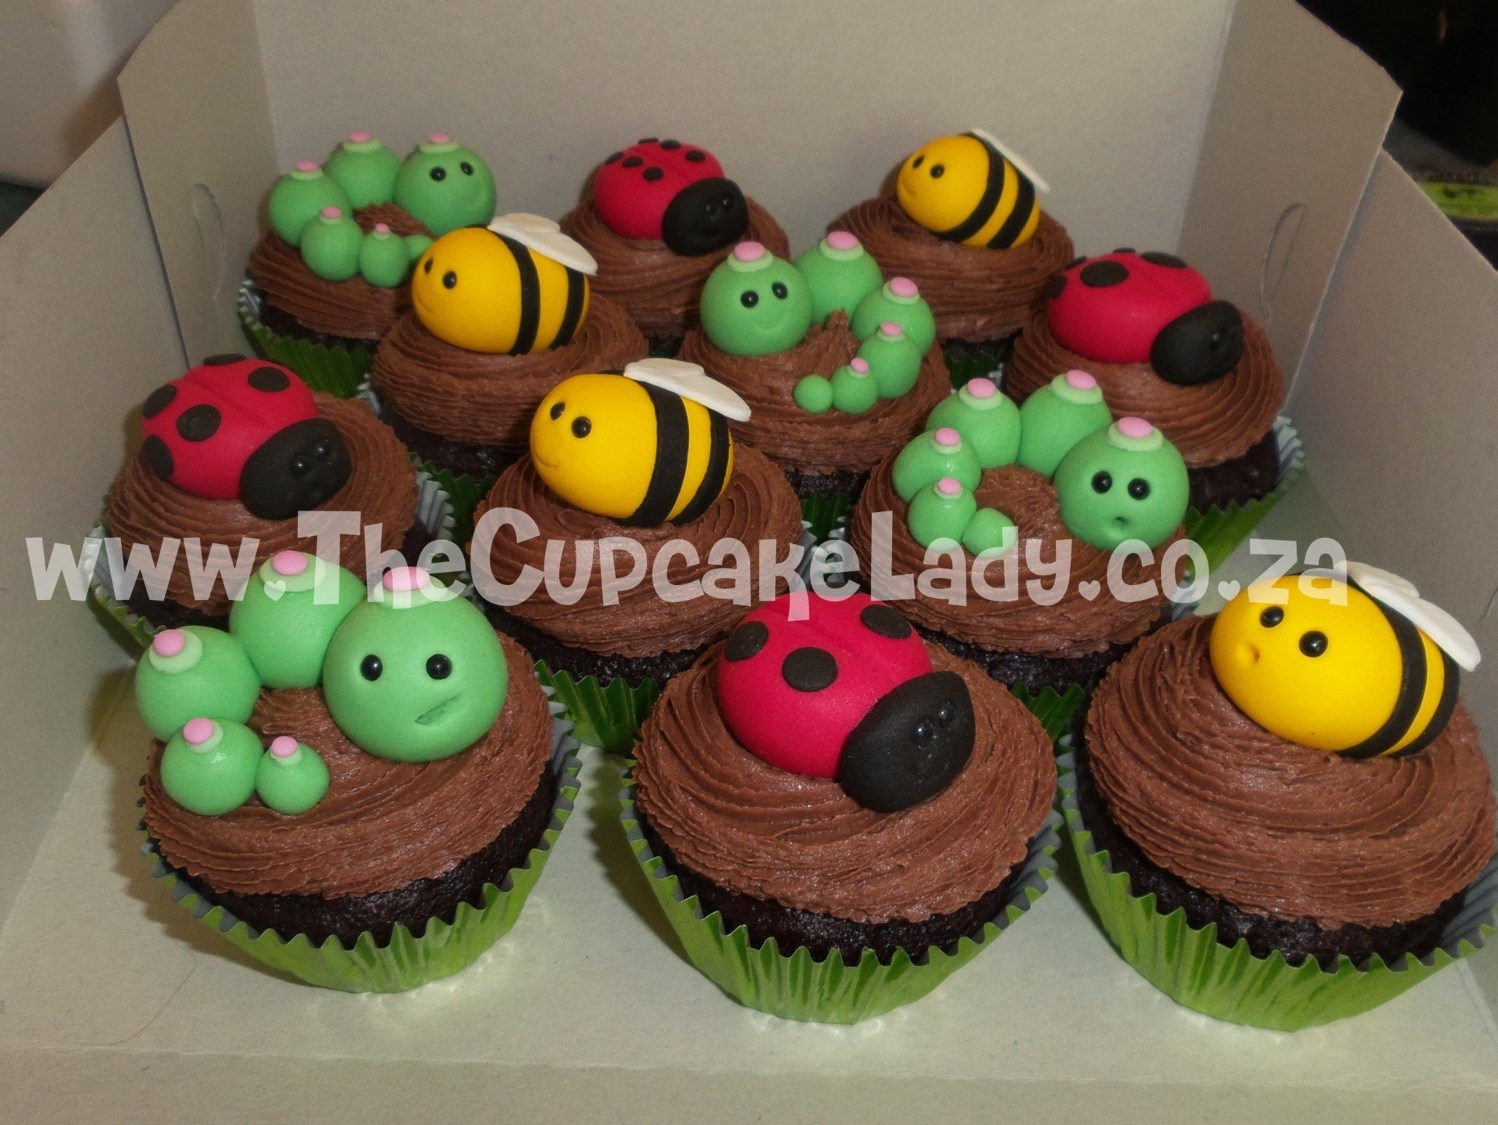 chocolate cupcakes in green foil paper cups with chocolate butter icing decorated with hand made sugar paste bees, ladybugs and worms